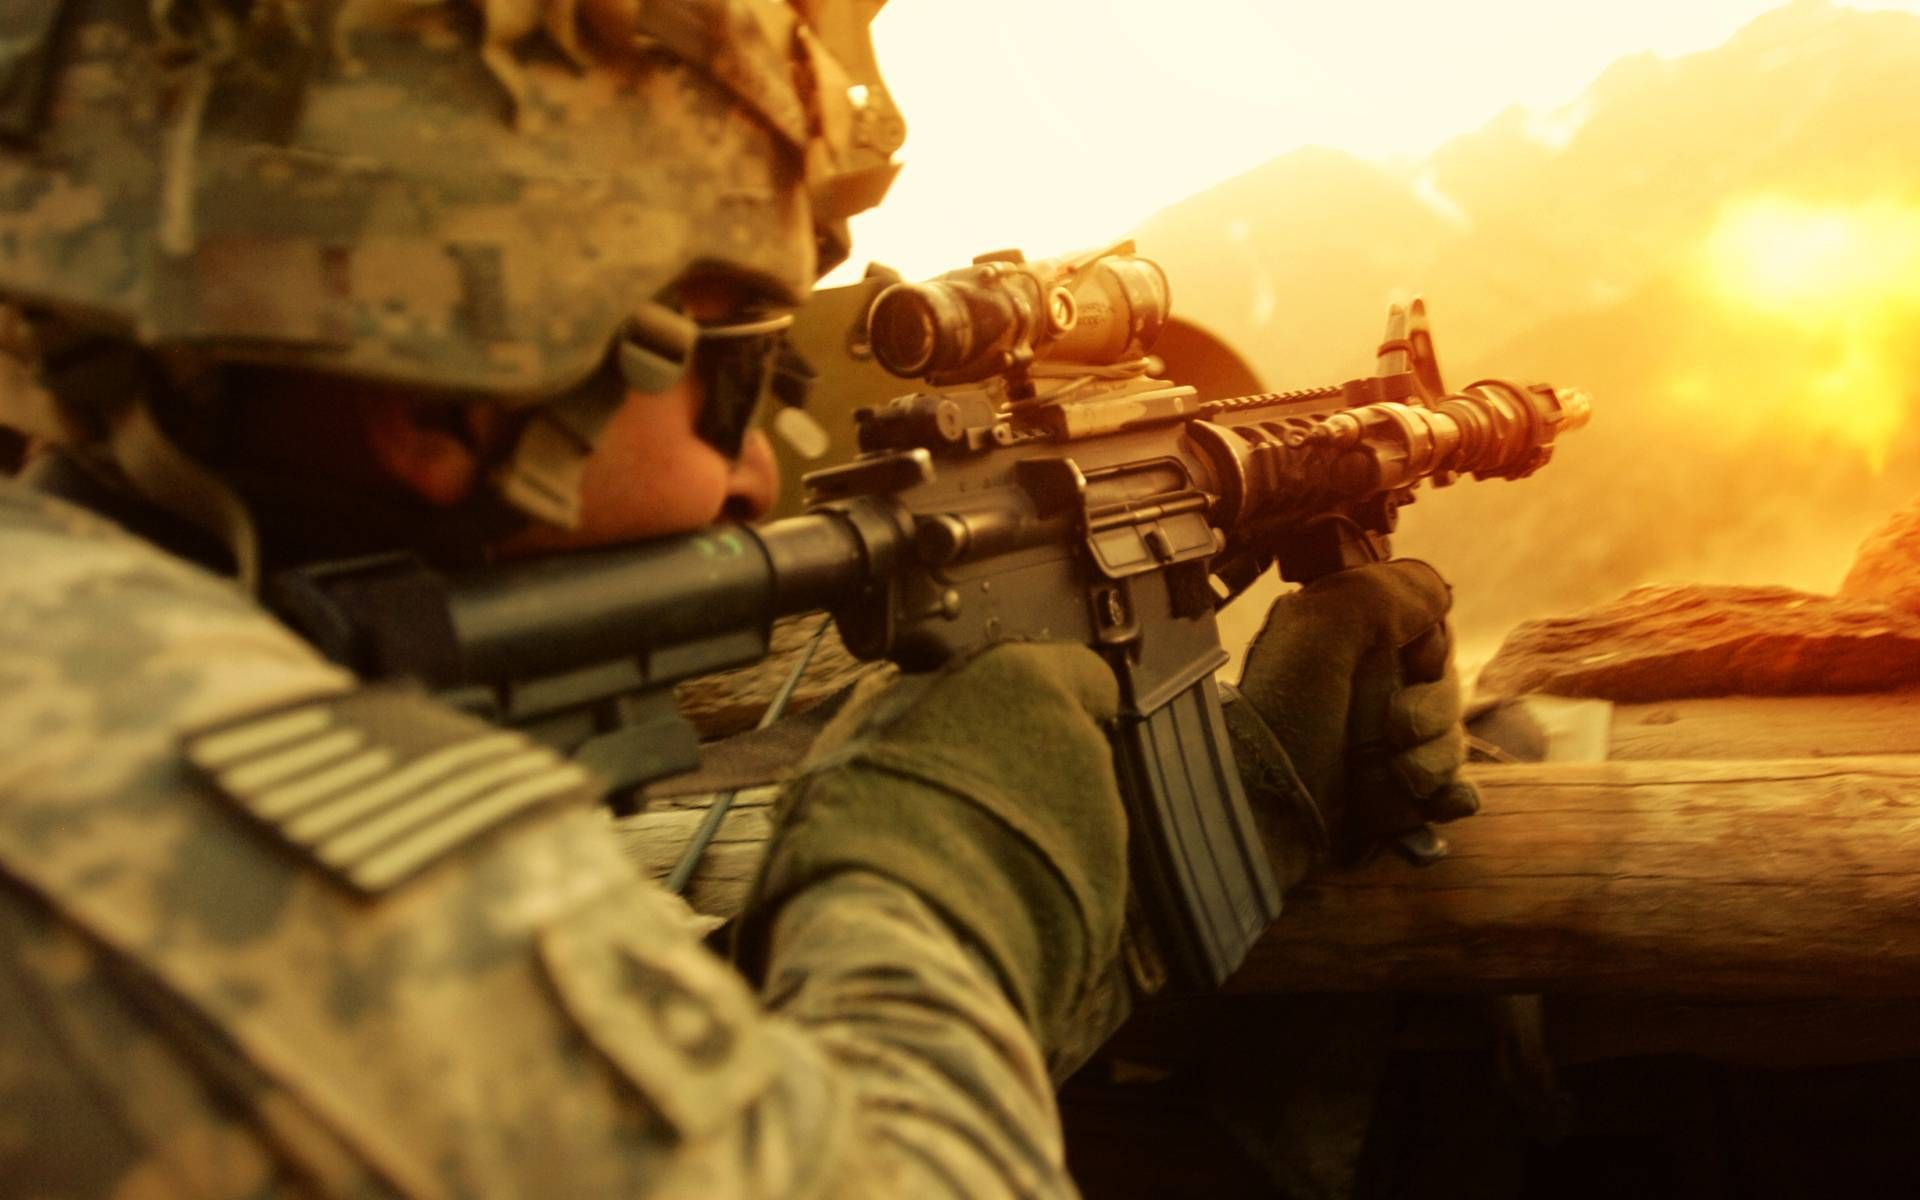 Download Us Army Wallpaper Hd 51: Army Wallpapers Free Download P Indian Military HD Desktop